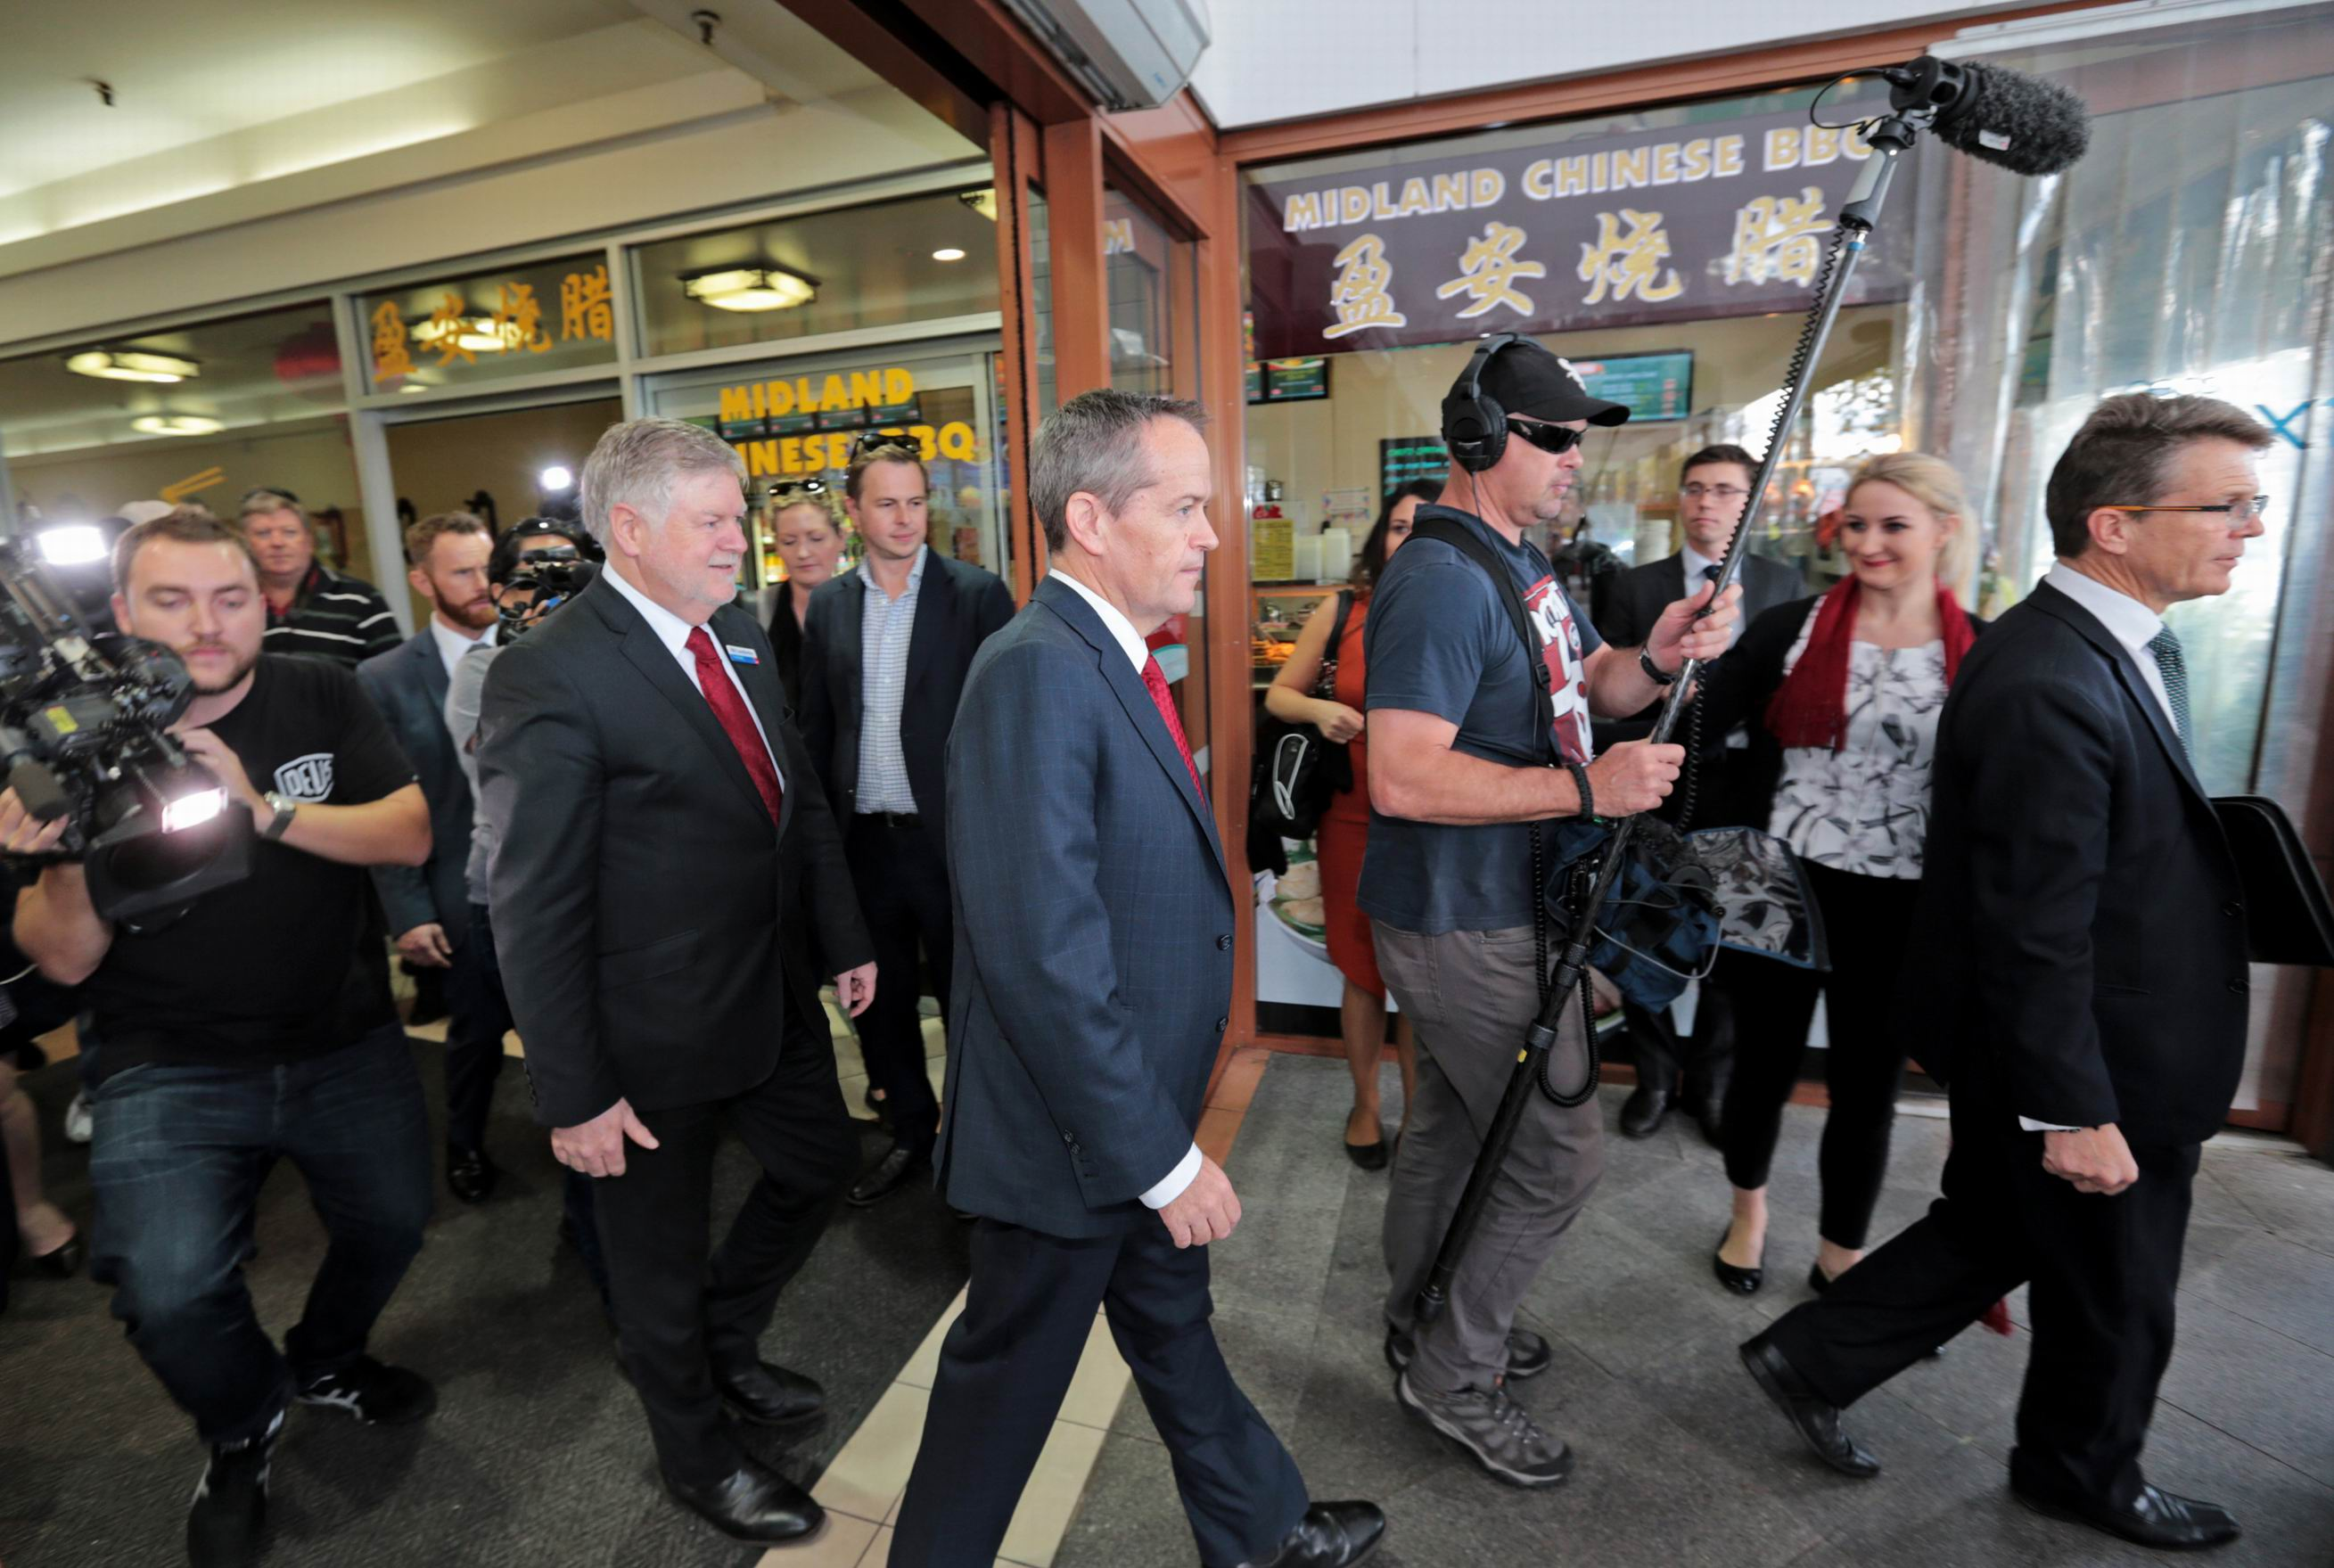 Bill Shorten (centre) followed by ALP Candidate for Hasluck Bill Leadbetter at the Centrepoint Shopping Centre in Midland. Pictures: David Baylis